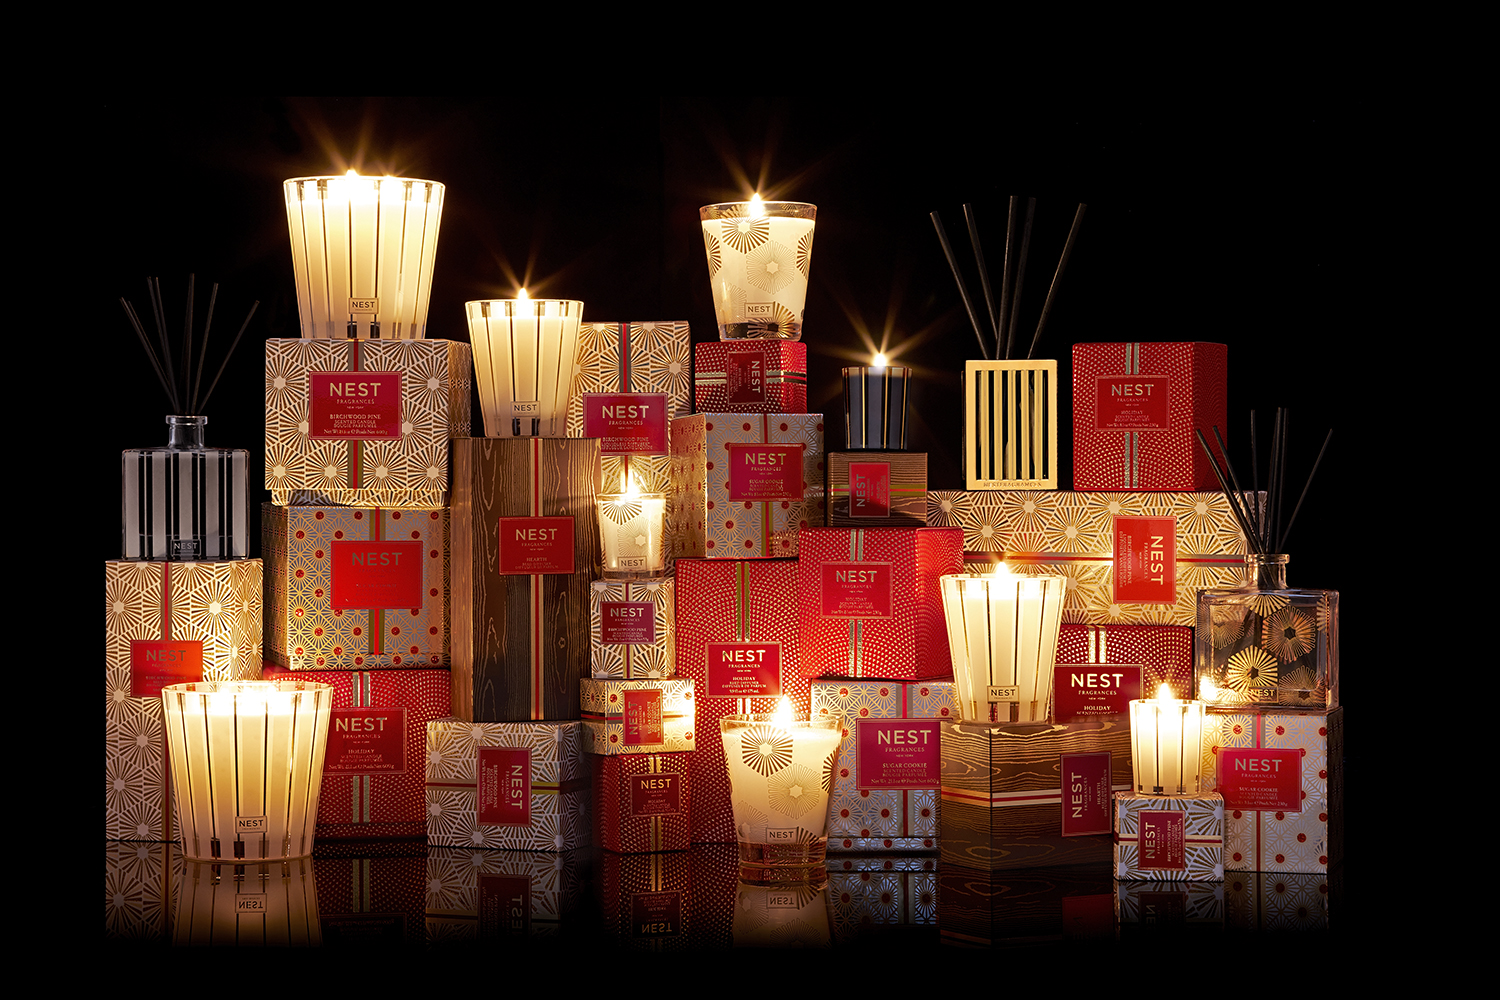 Nest's collection of holiday candles